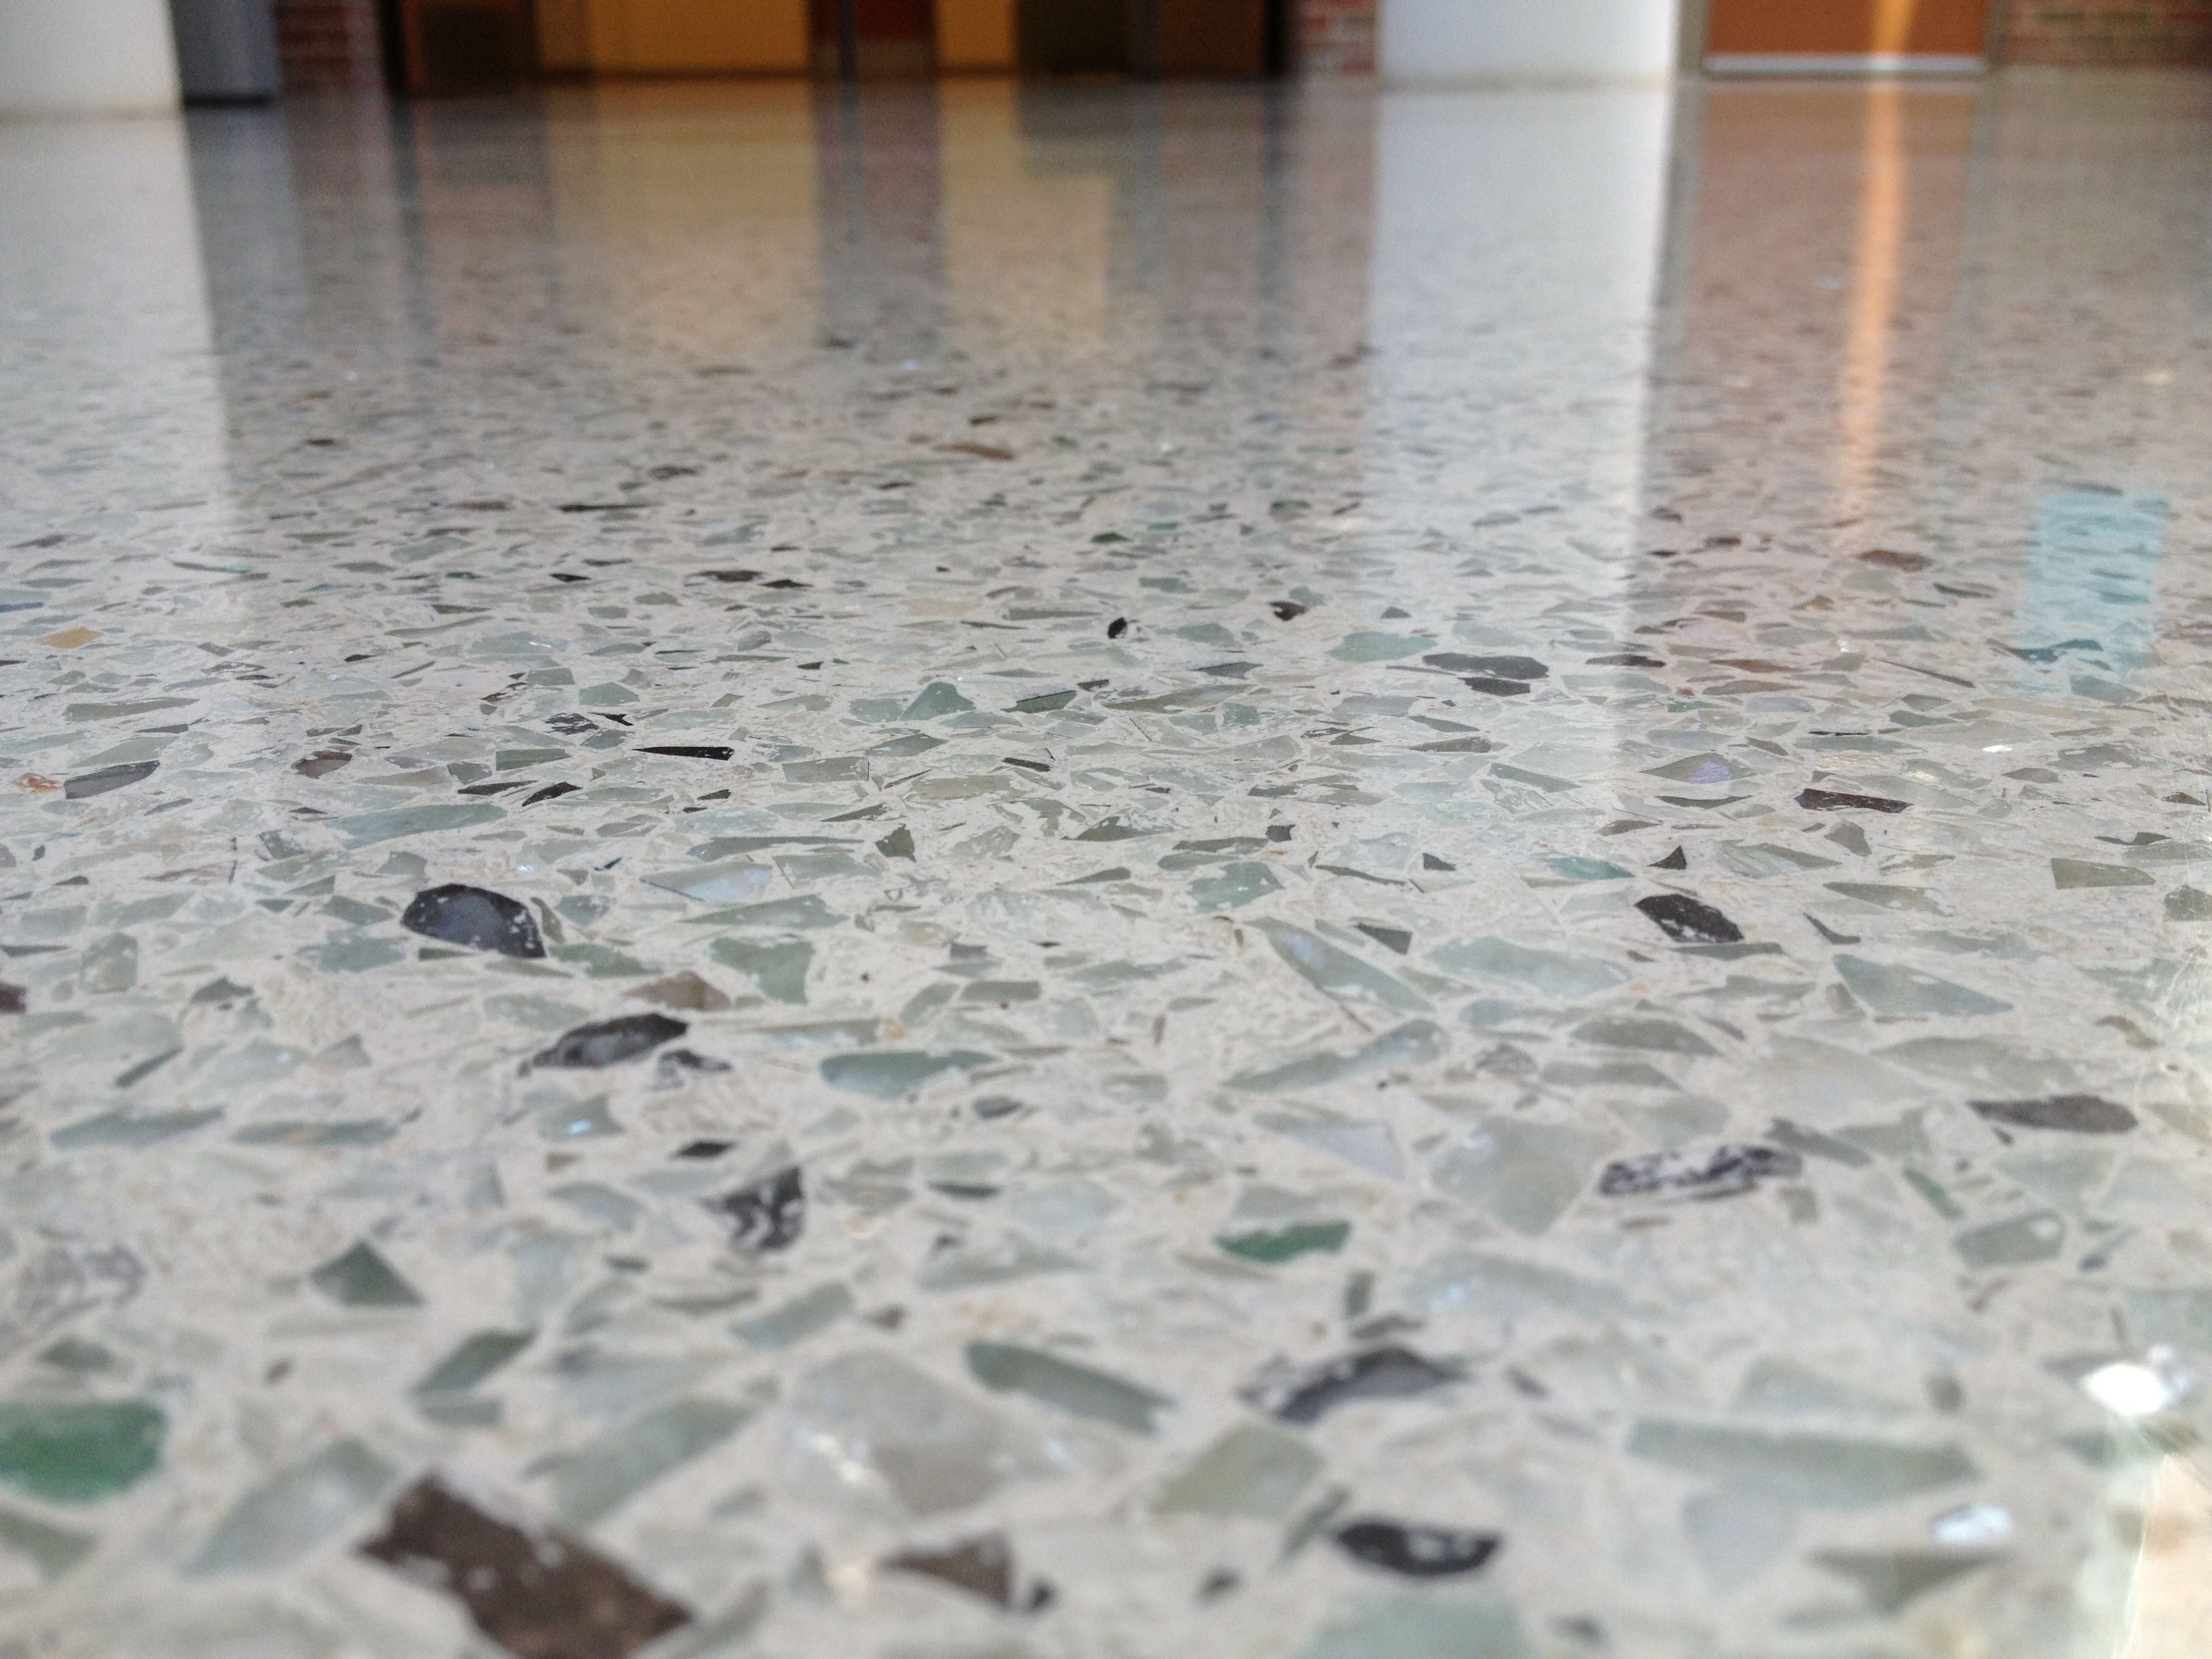 Design Terrazzo Floors i dream of terrazzo floors but would need radiant heating in colorado